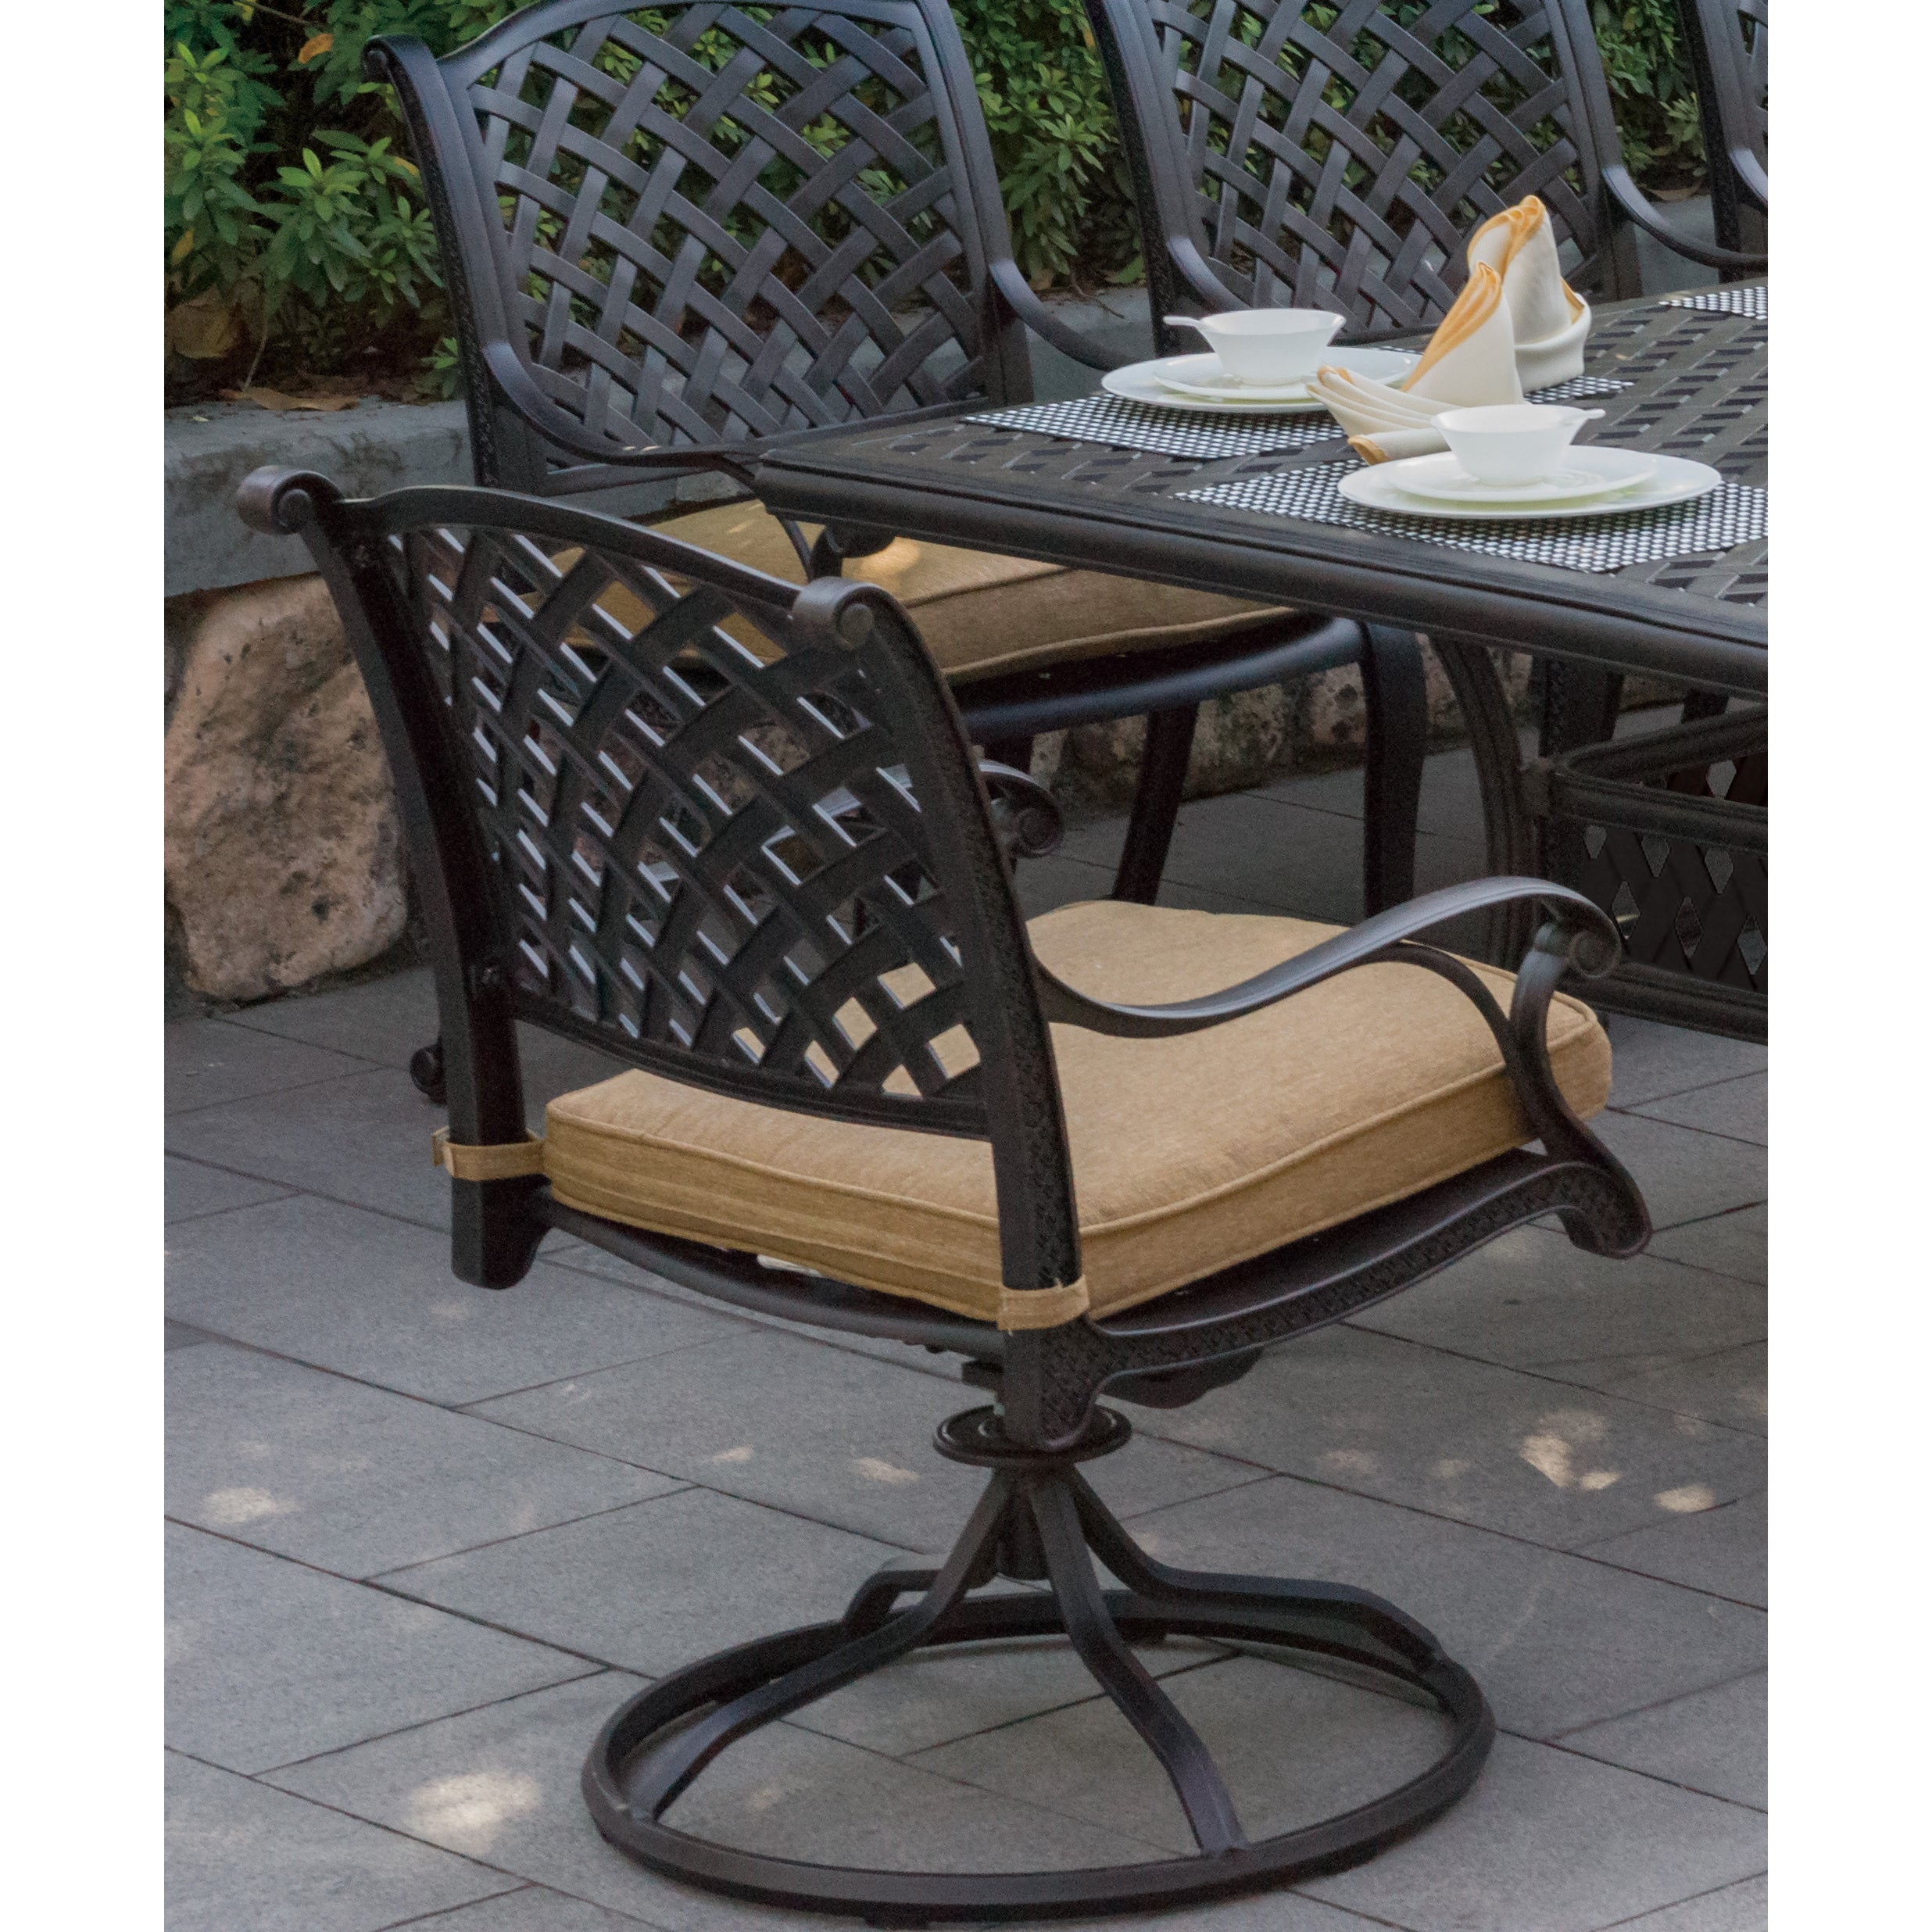 Nassau Swivel Patio Dining Chairs (Set of 2) (Antique Bro...